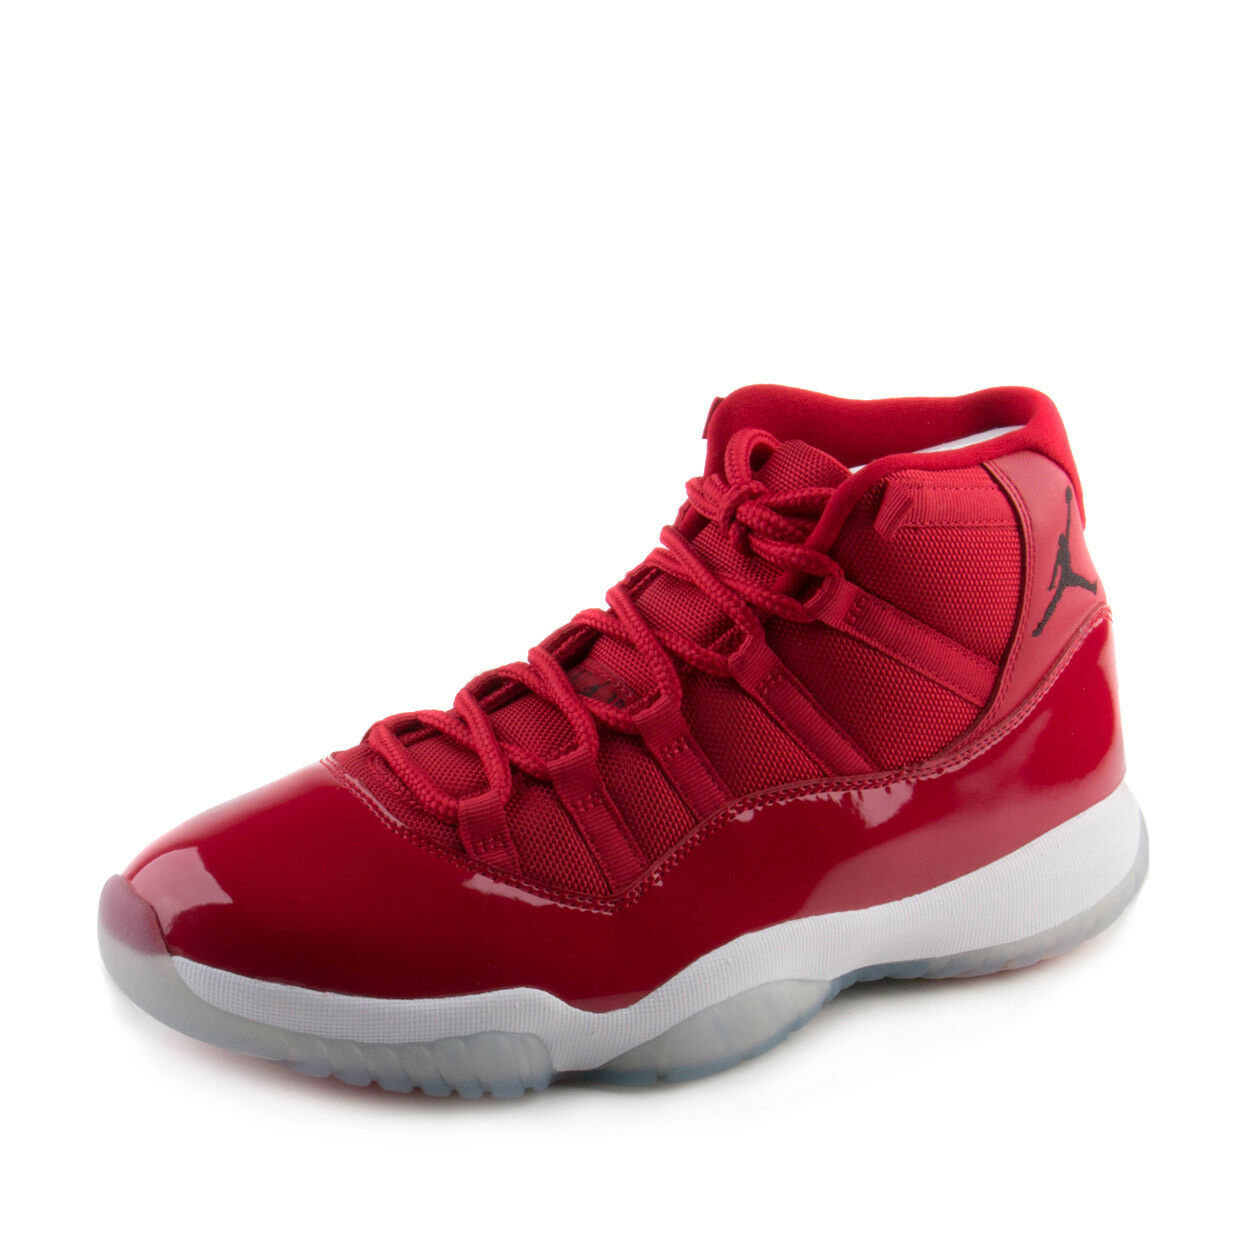 Mens Air Jordan 11 Retro  Win Like 96  Gym Red Black 378037-623